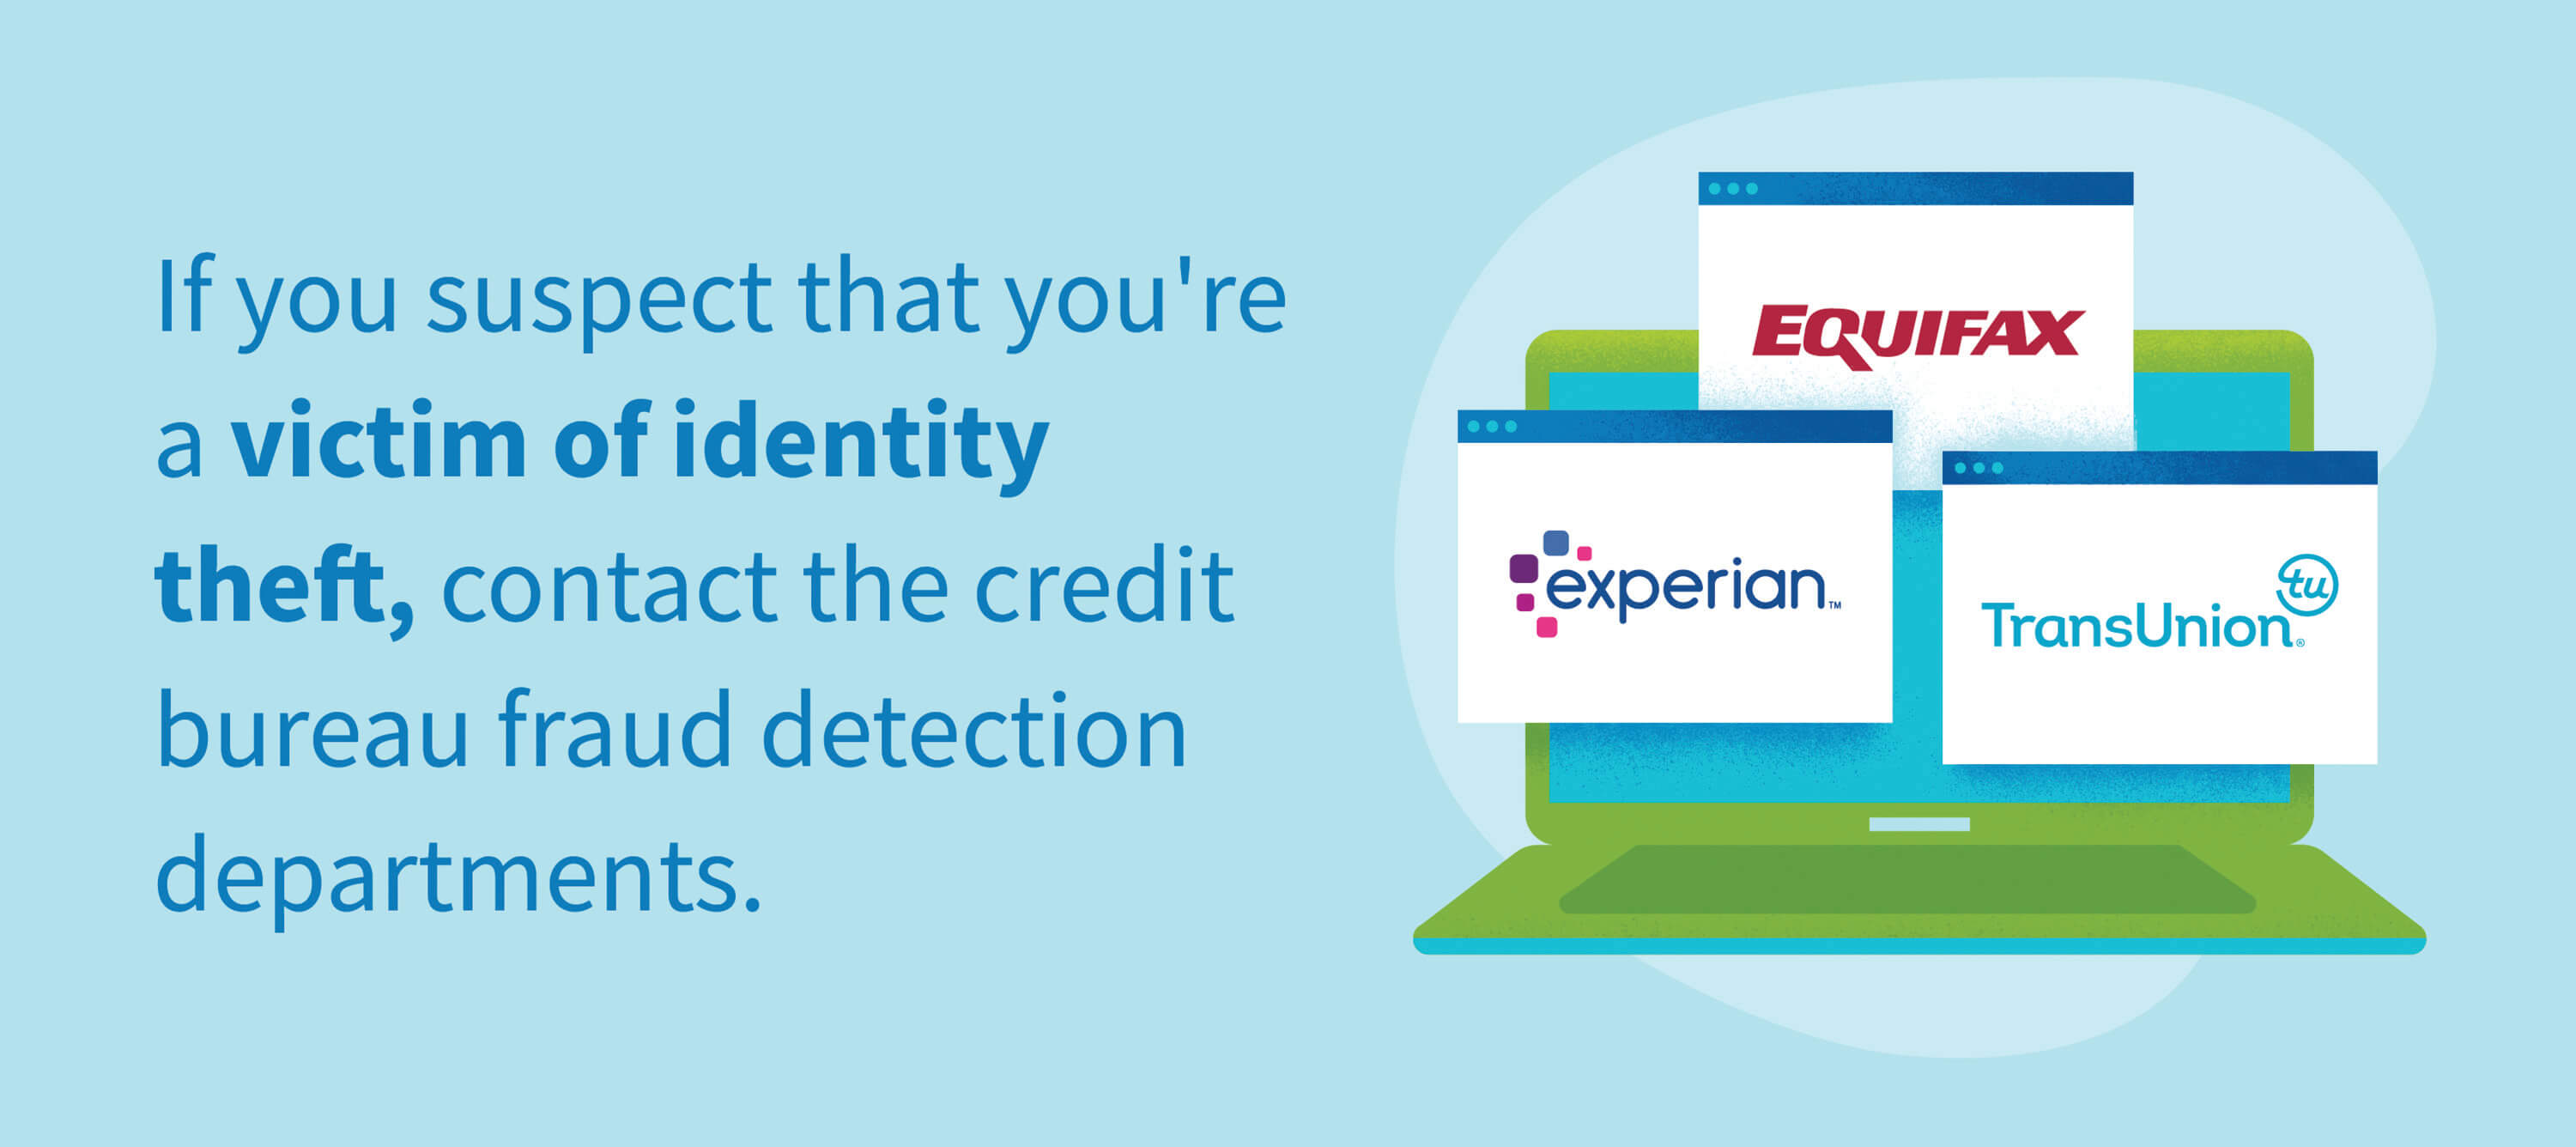 If you suspect that you're a victim of identity theft, contact the credit bureau fraud detection departments.